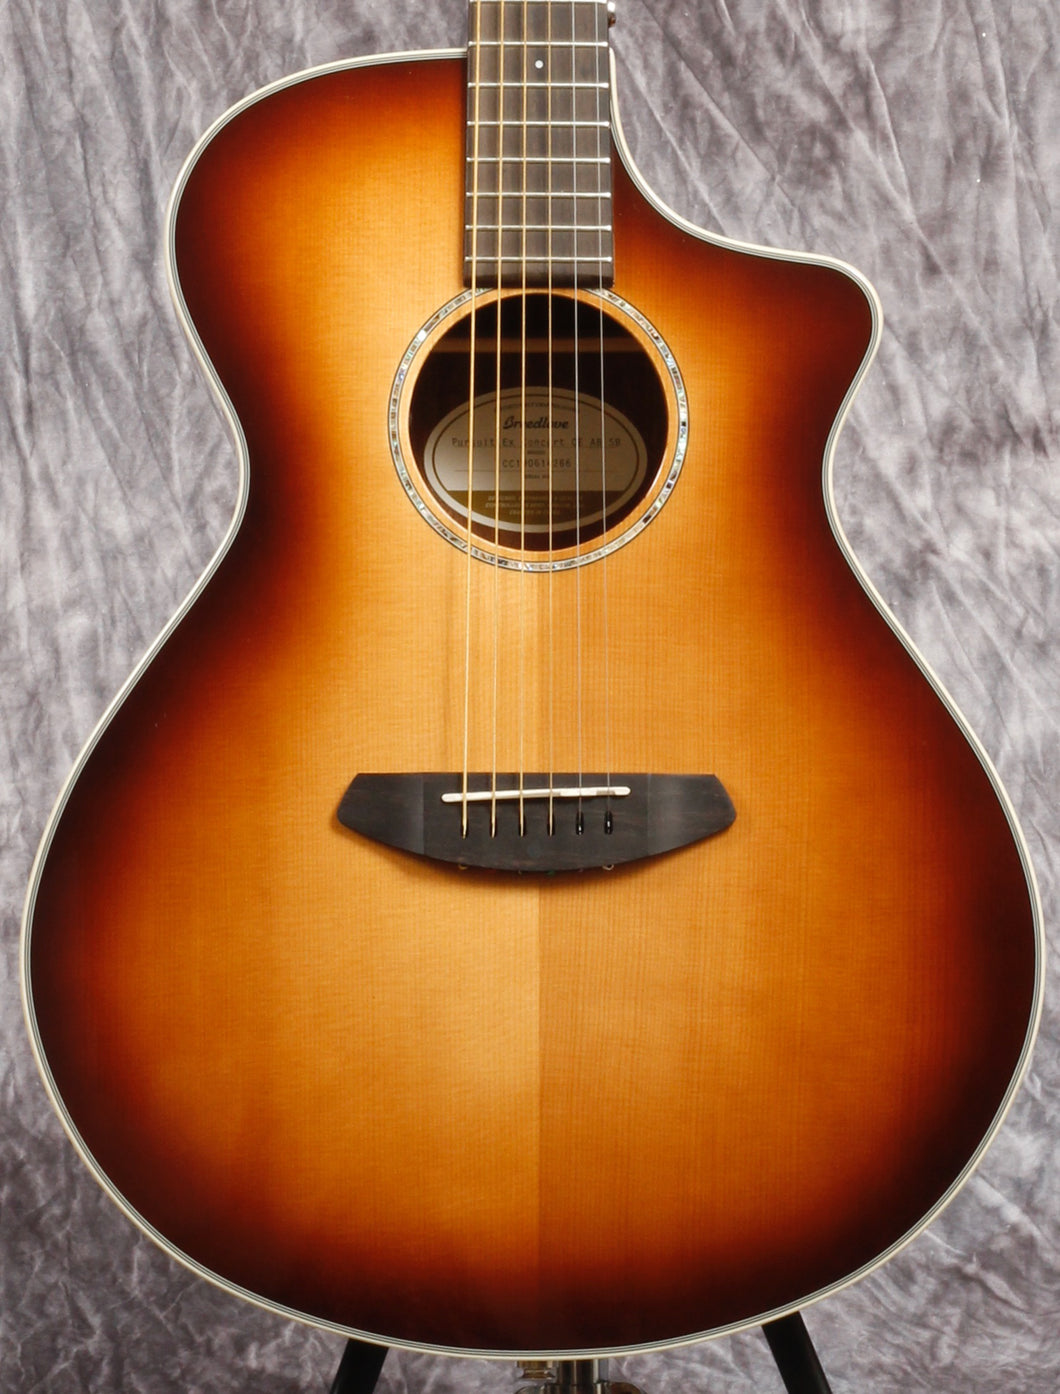 Breedlove Pursuit Exotic Concert Sunburst CE Sitka-Australian Blackwood (USED)